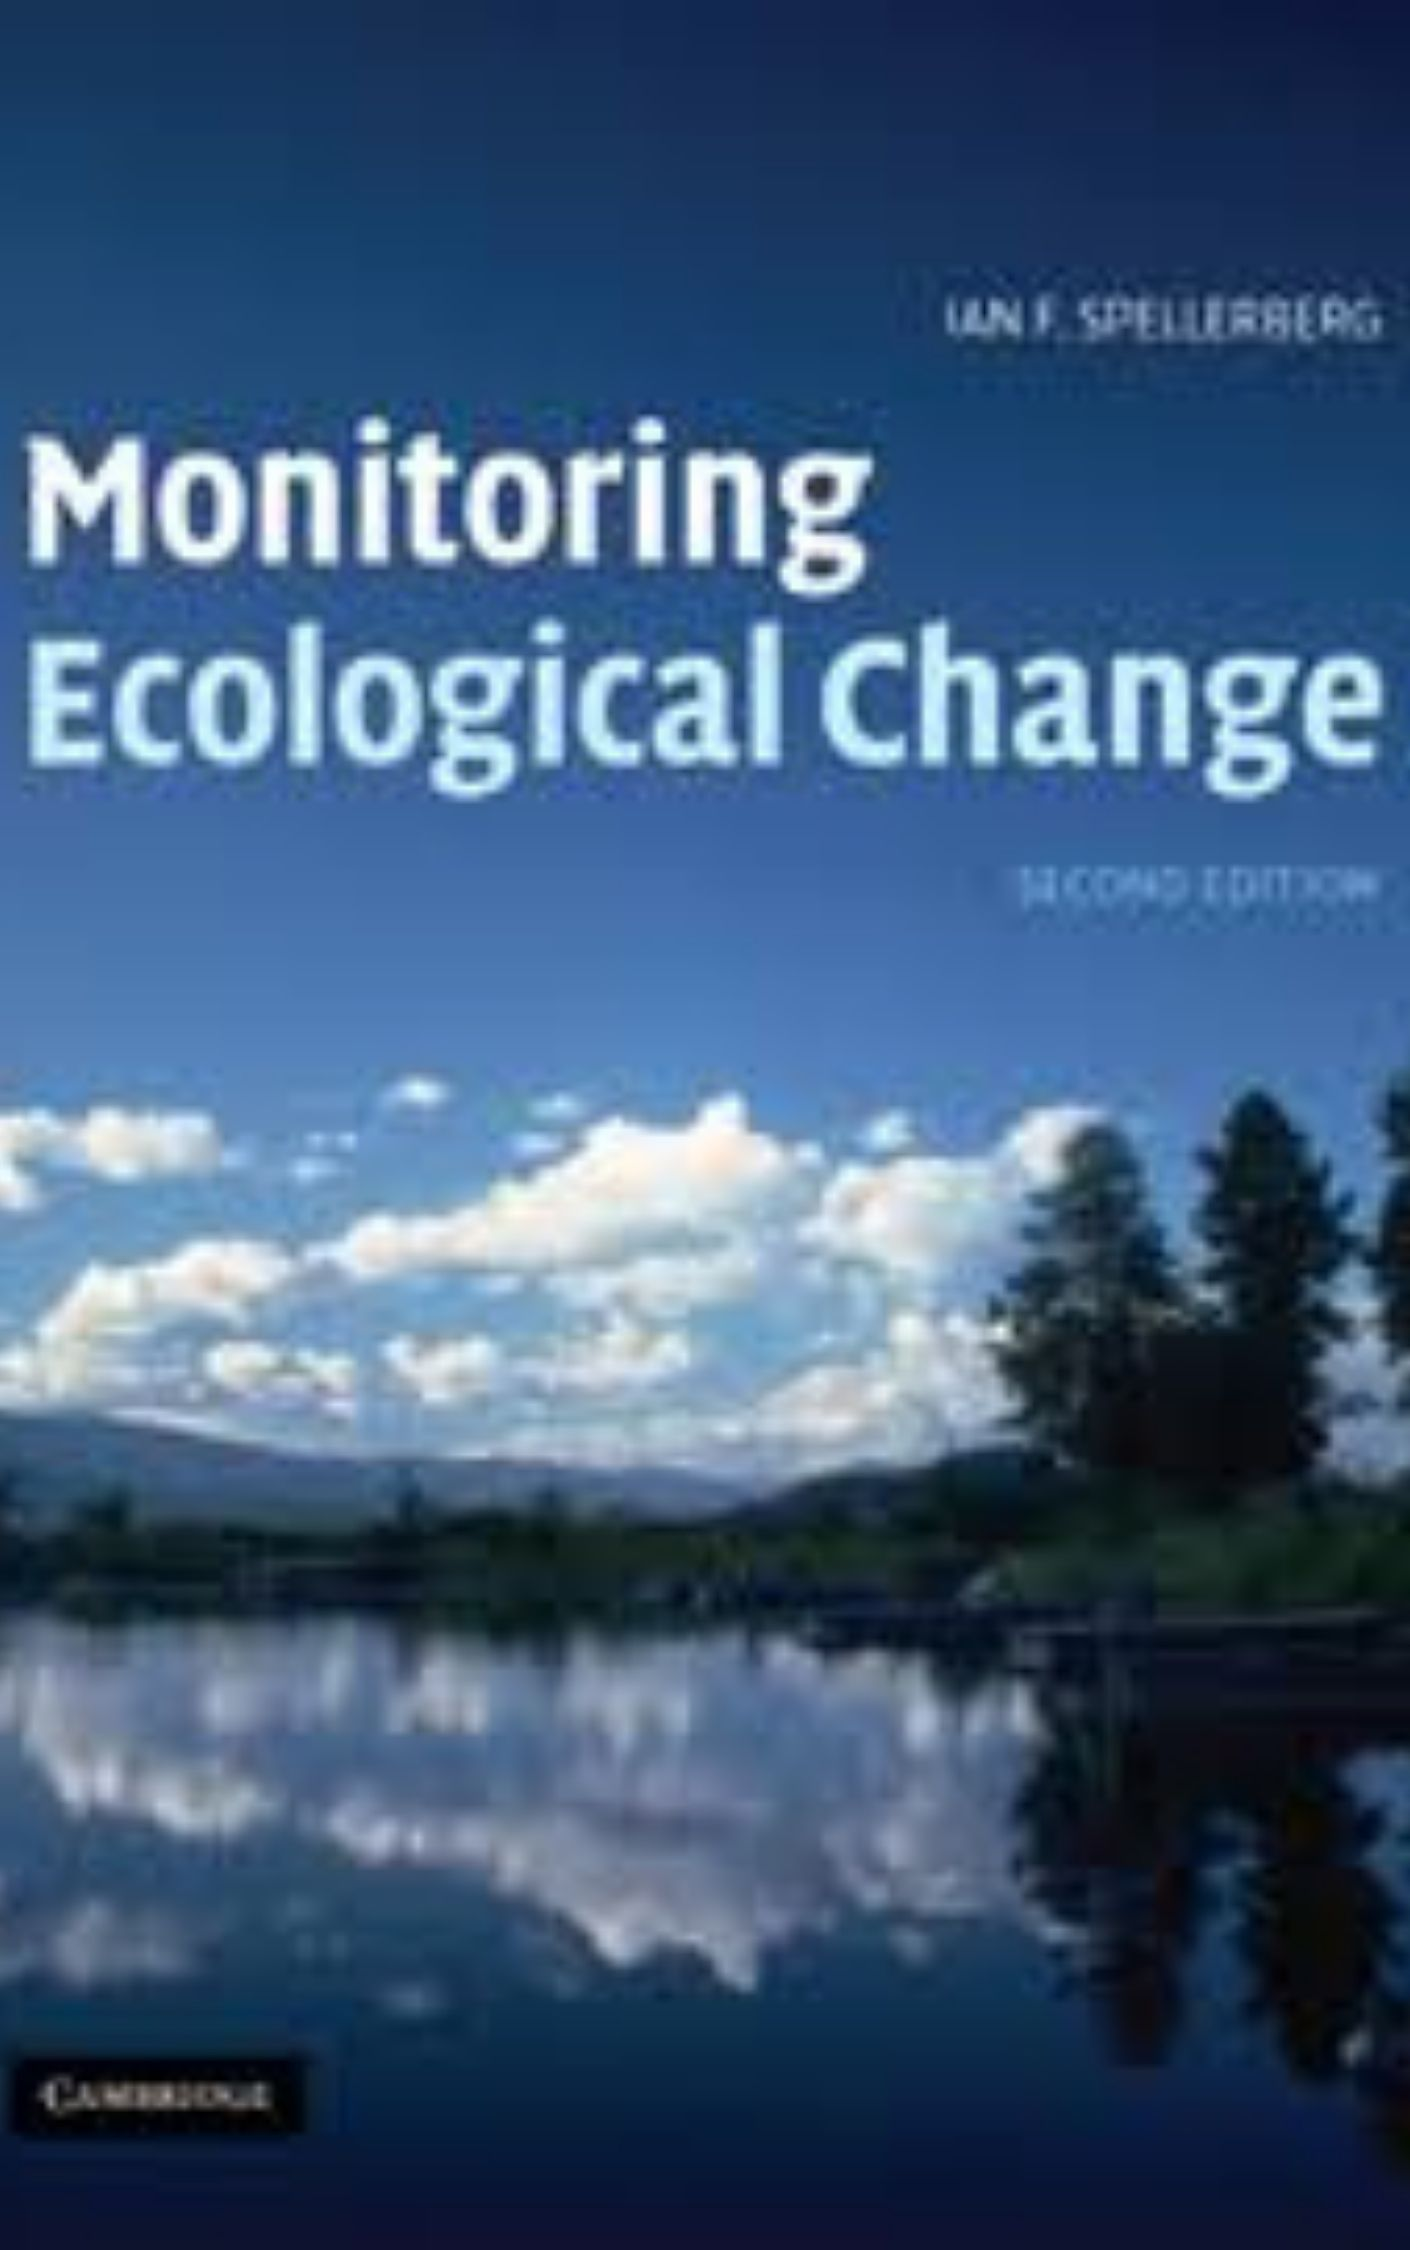 Monitoring ecological change by Ian Spellerberg